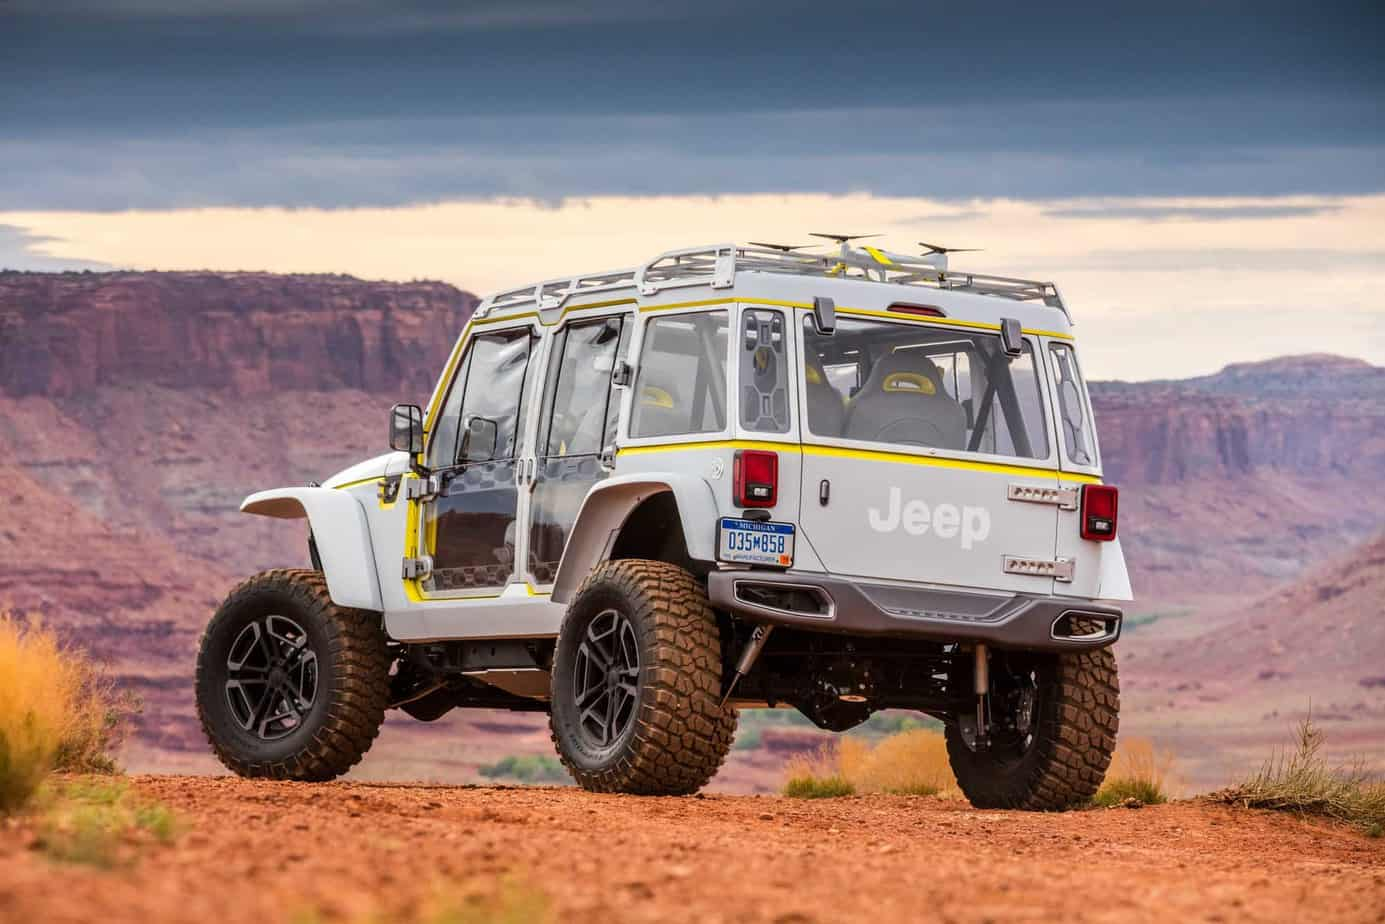 2017 Jeep Concept Vehicles >> 2017 Moab Jeep Concept Vehicles Released – Expedition Portal